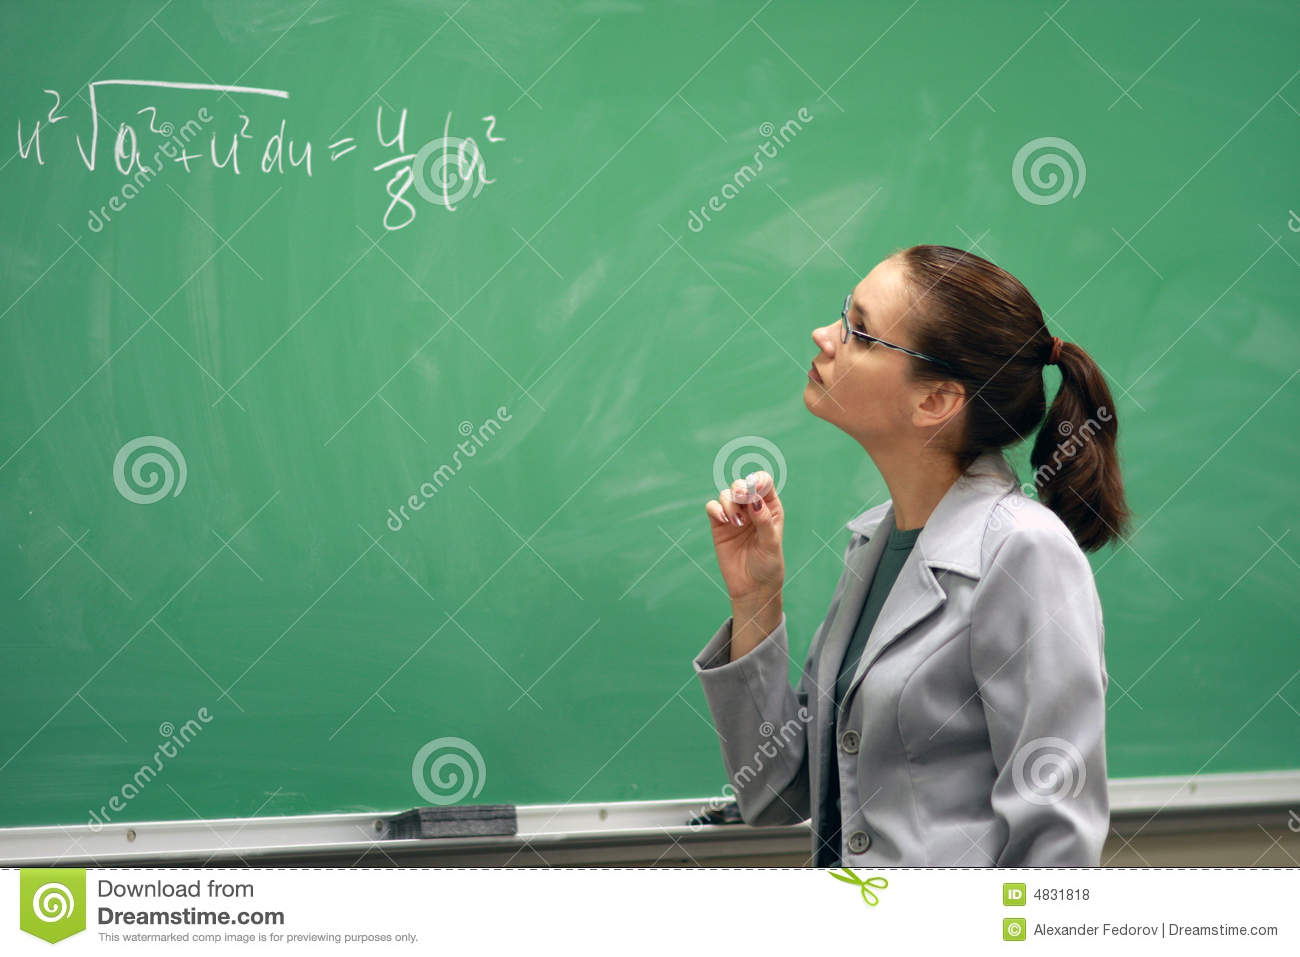 Teacher and the greenboard